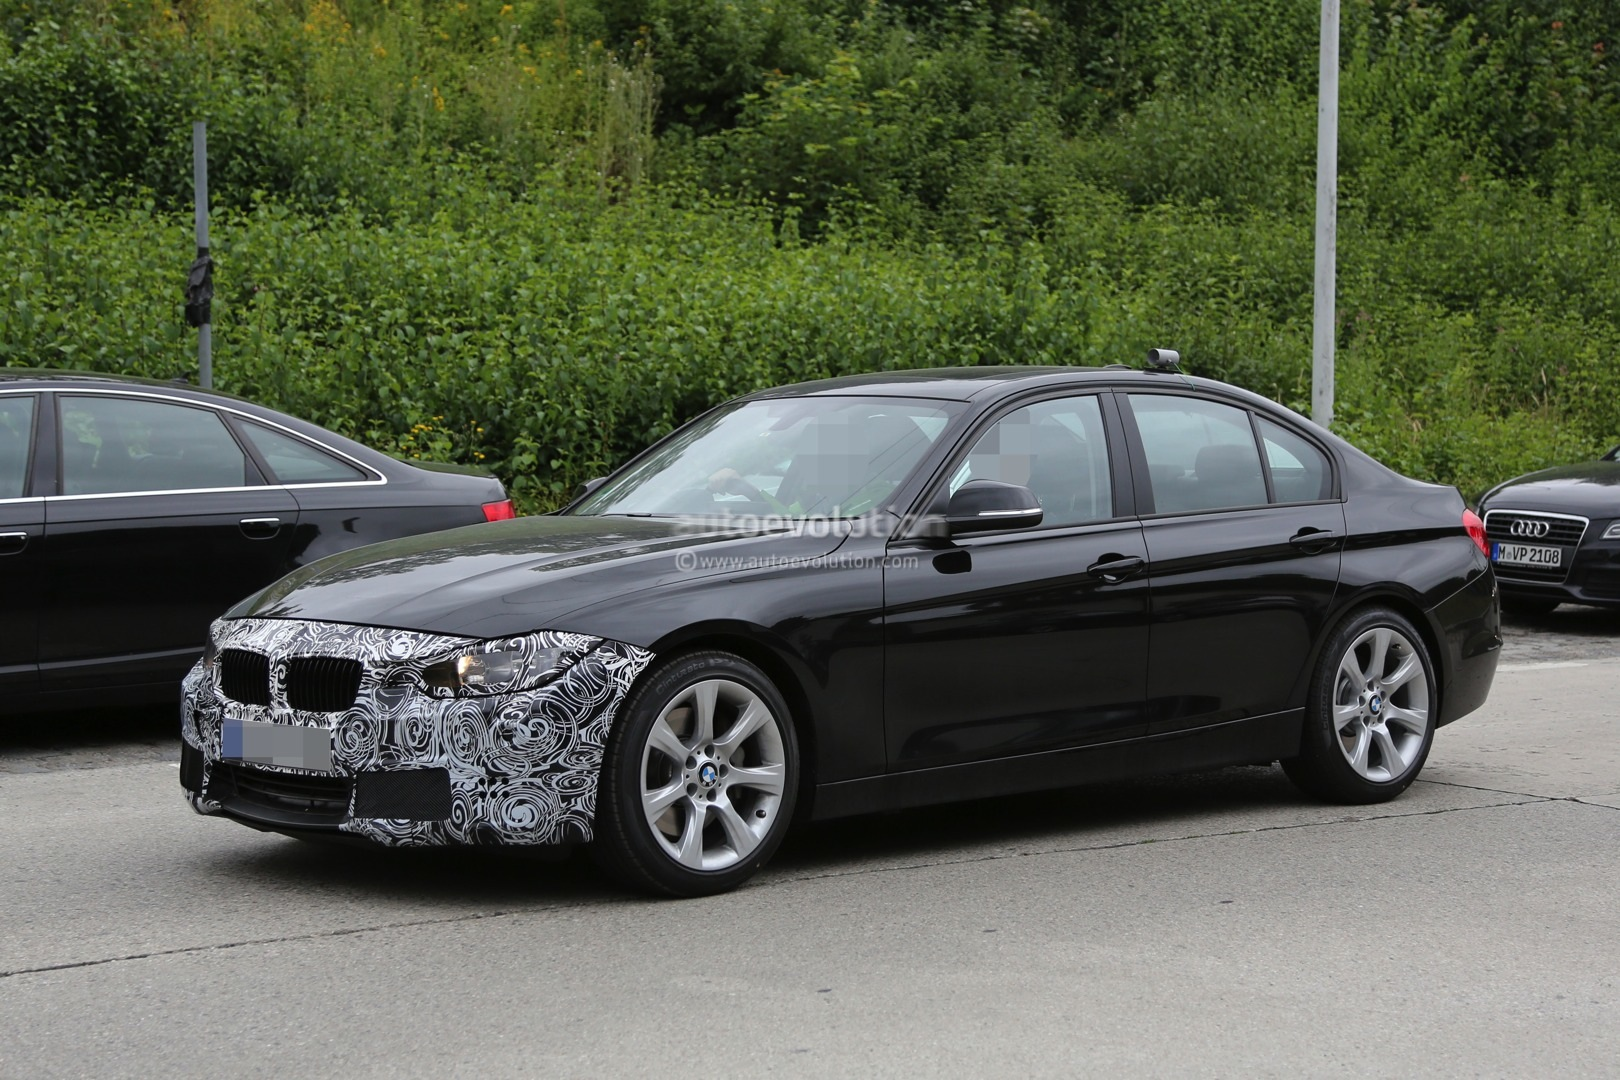 2015 Facelift BMW 3 Series Sedan and Touring Spied Testing ...